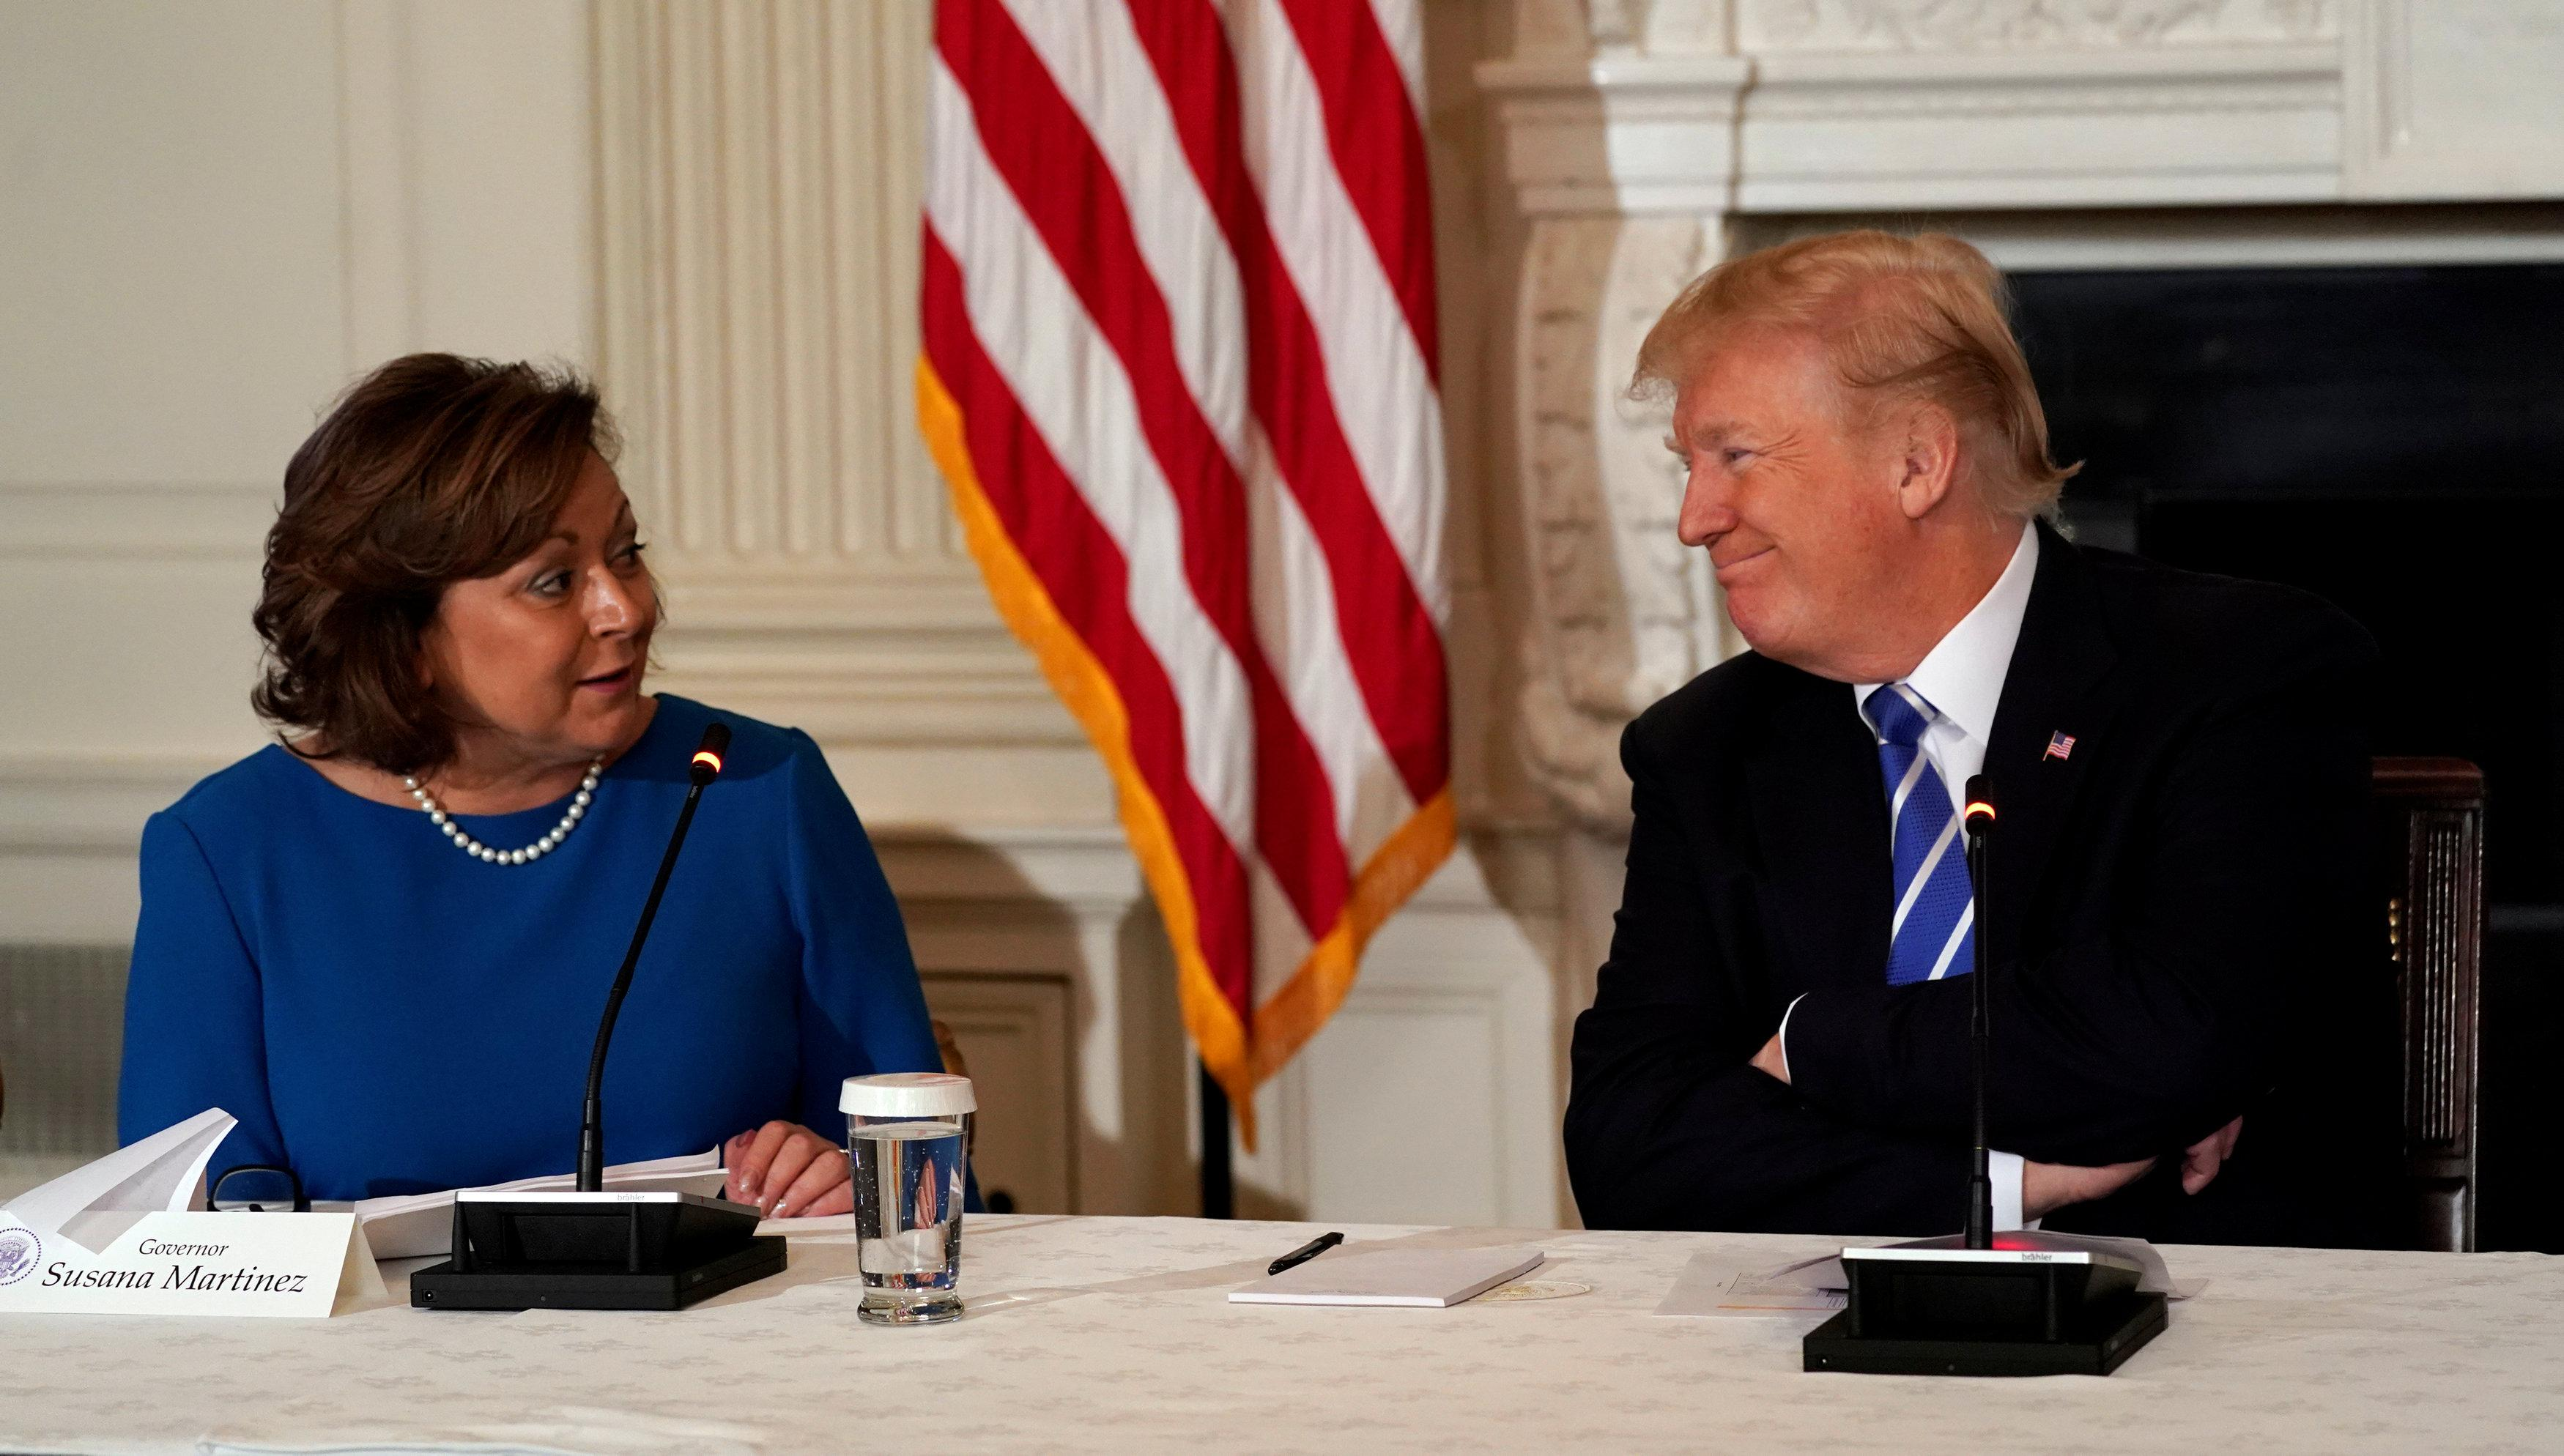 U.S. President Donald Trump looks toward New Mexico Governor Susana Martinez during a meeting on infrastructure at the White House in Washington, U.S., February 12, 2018. Kevin Lamarque